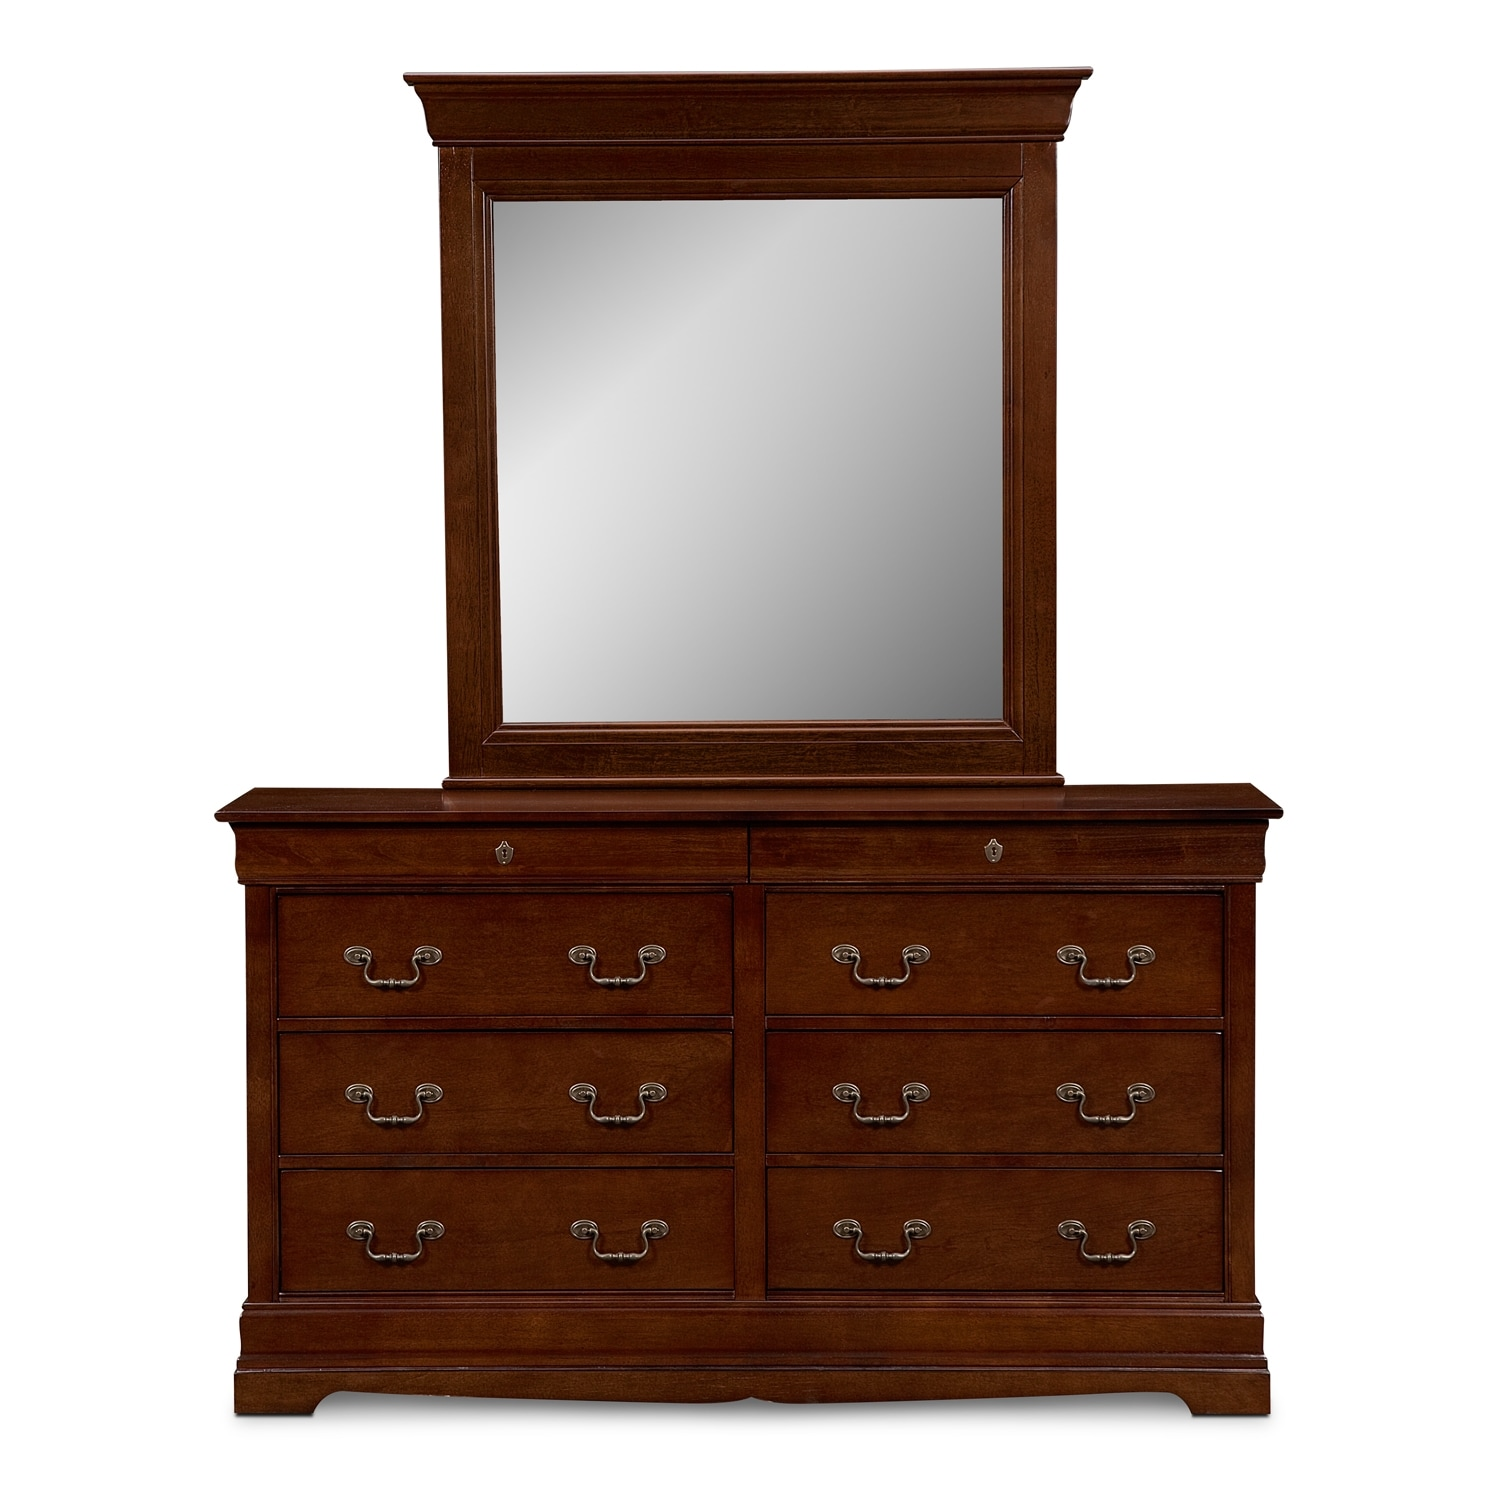 Neo classic dresser and mirror cherry american for Furniture and mirror